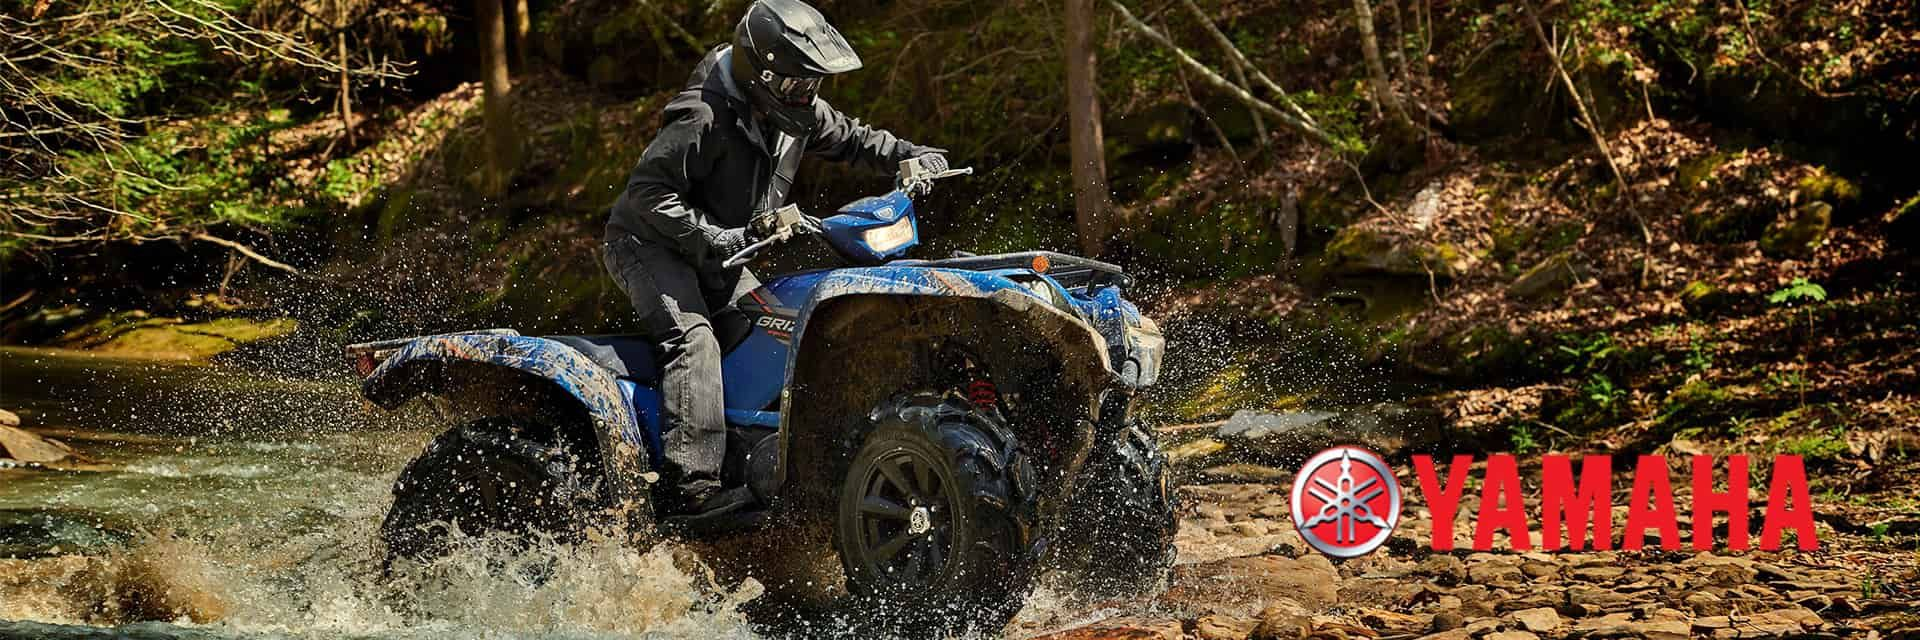 Yamaha ATVs are available at Central Maine Powersports | Lewiston, ME